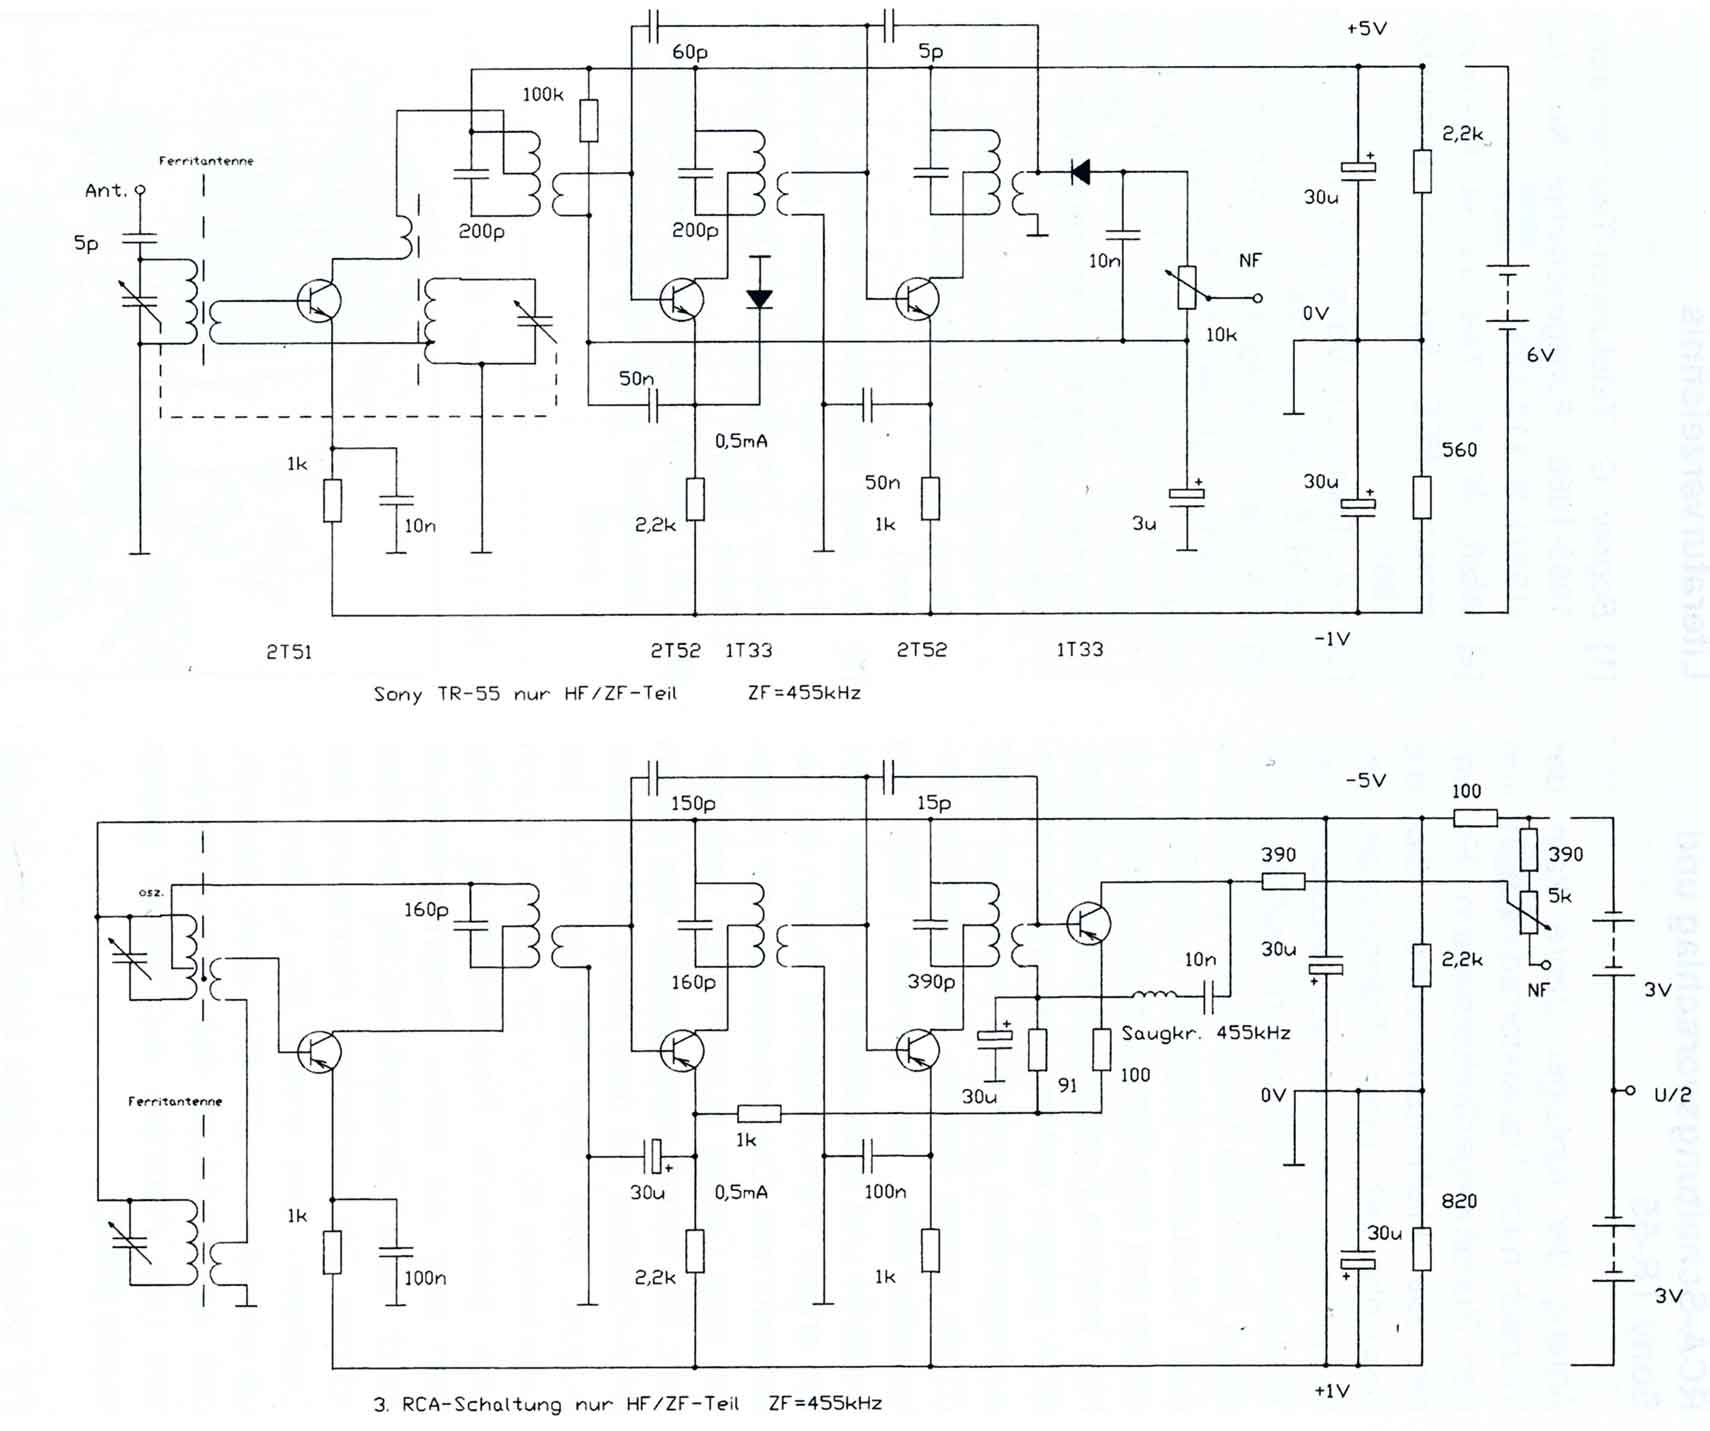 Chad484 moreover Am Mini Transmitter Module besides Mazda Mpv Lw5w Obd Schematic 17 Pin Obd2 16 Pin 35742 together with Spark Gap transmitter besides Franks Box Echo Chamber Diagram. on am radio schematics